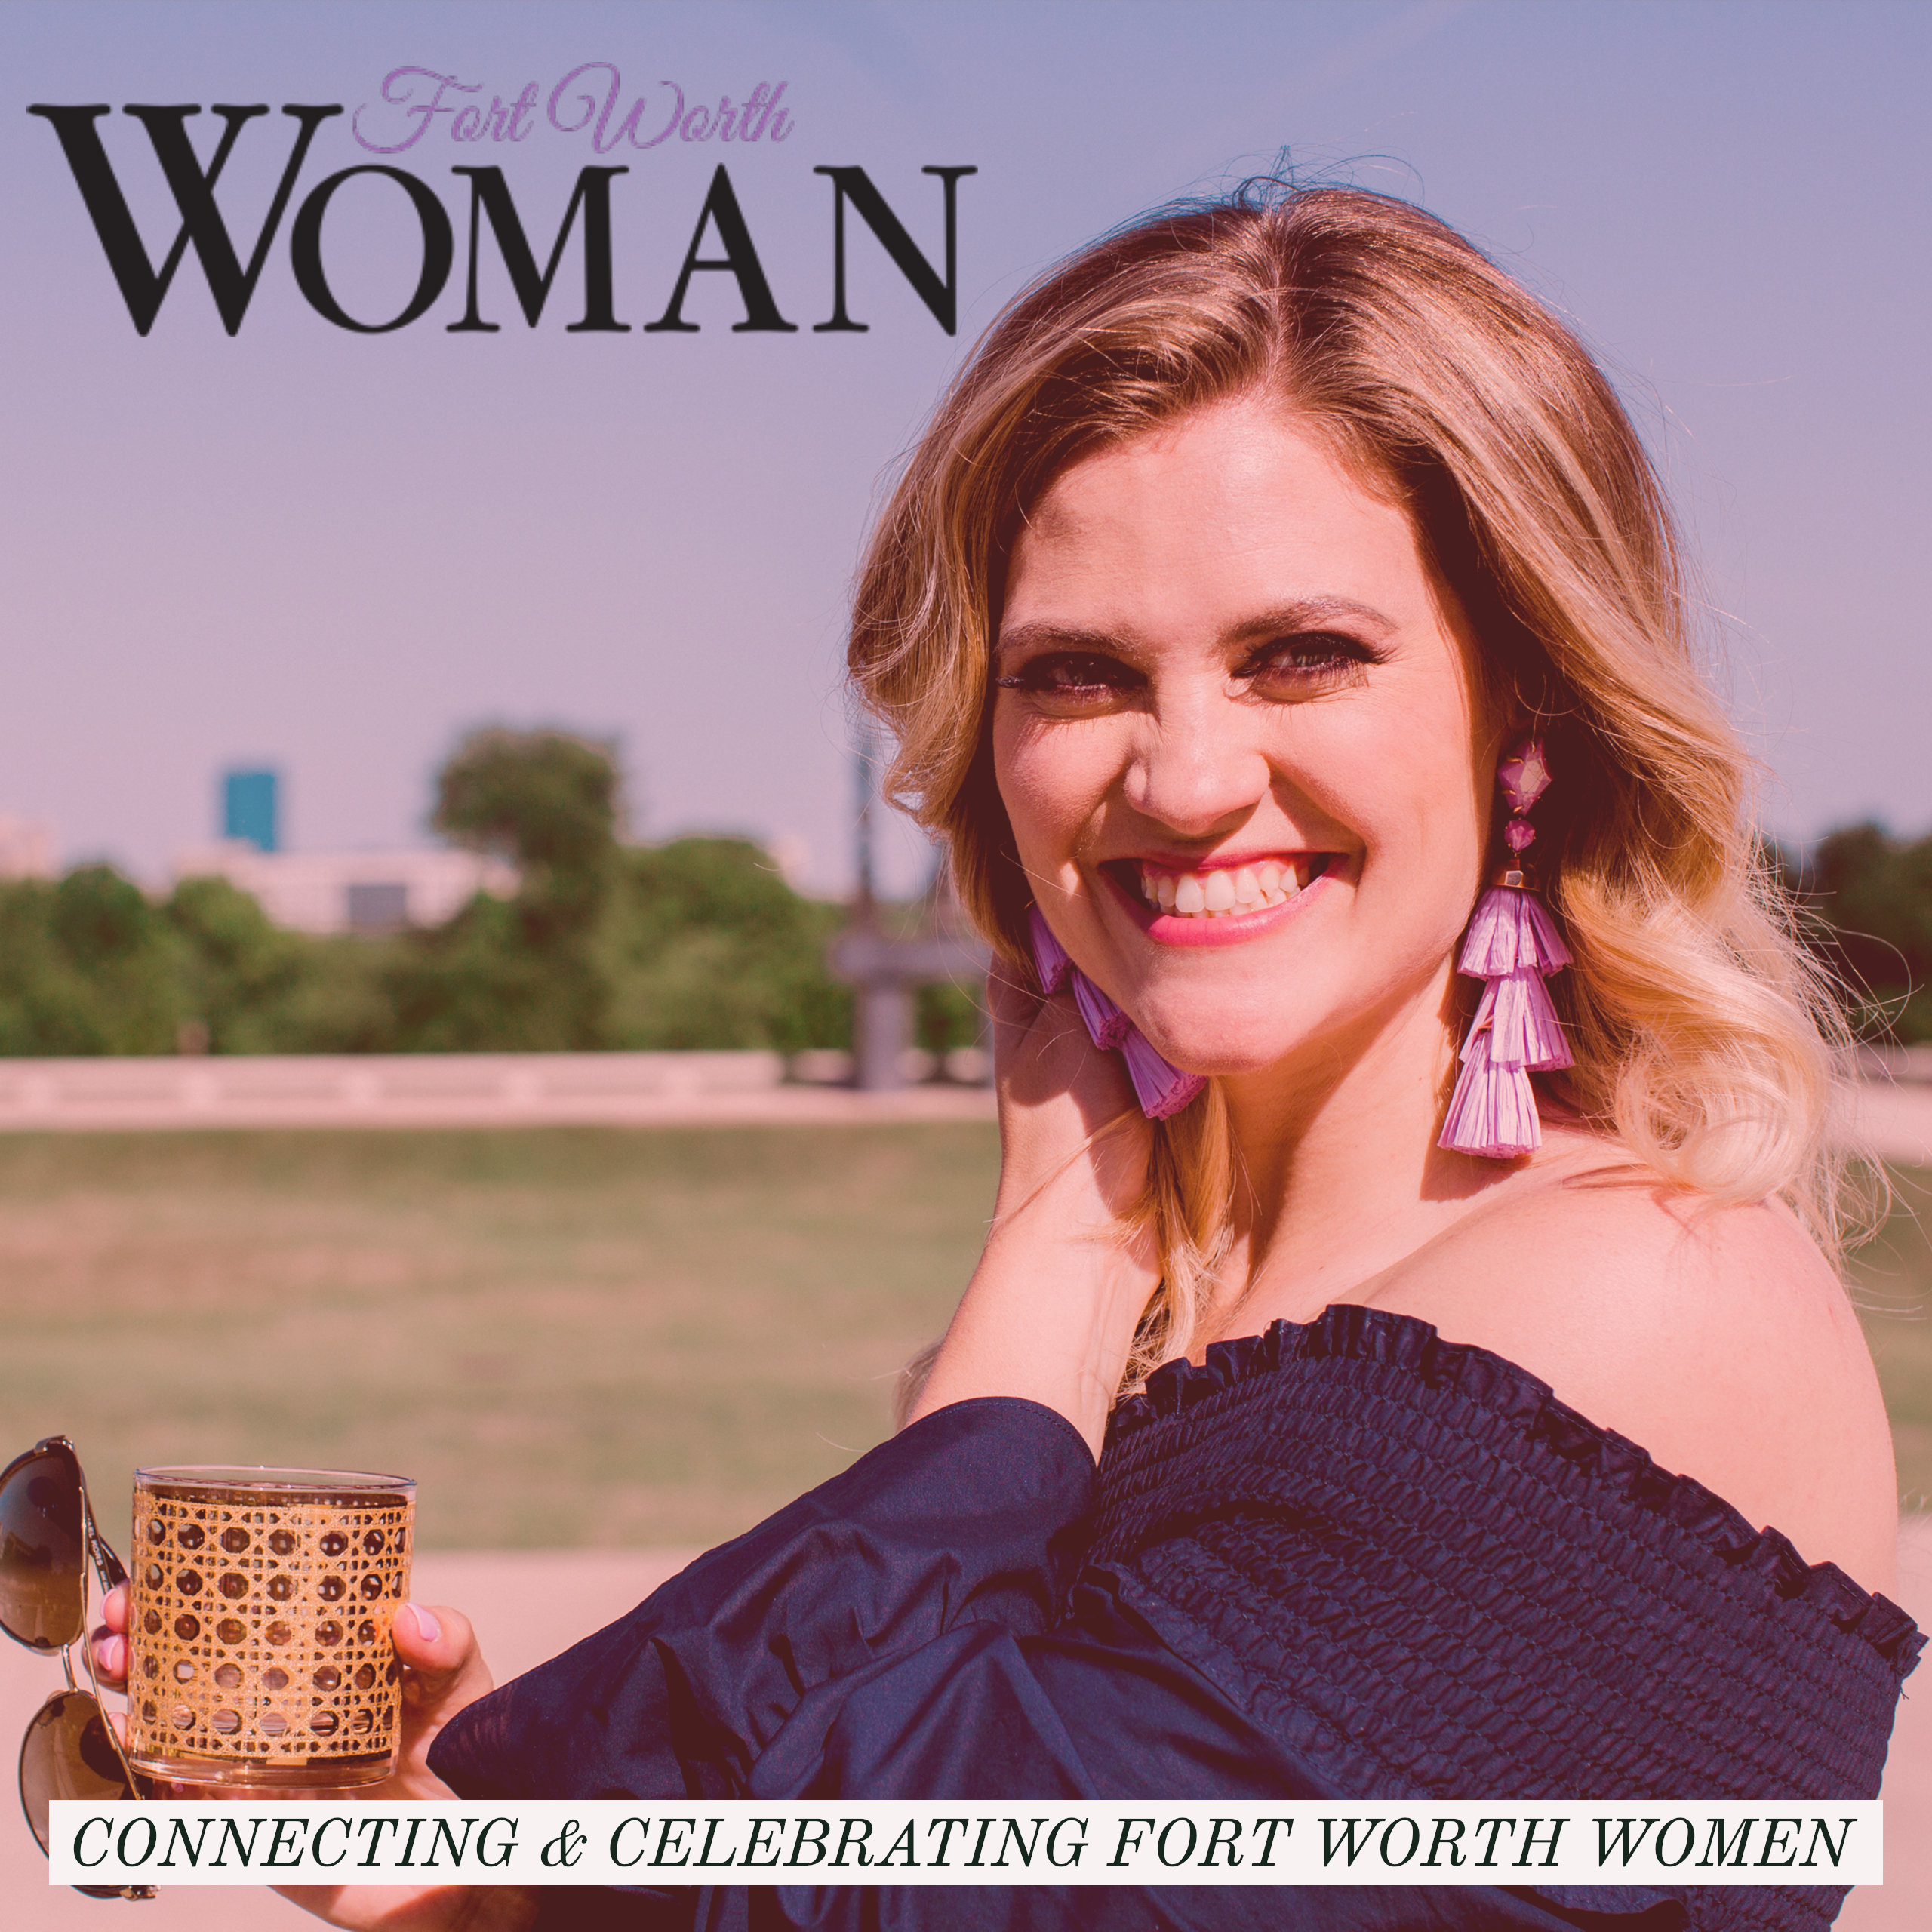 Ad for Fort Worth Woman with pic of smiling face, logo and text saying Connecting and Celebrating Fort Worth Women